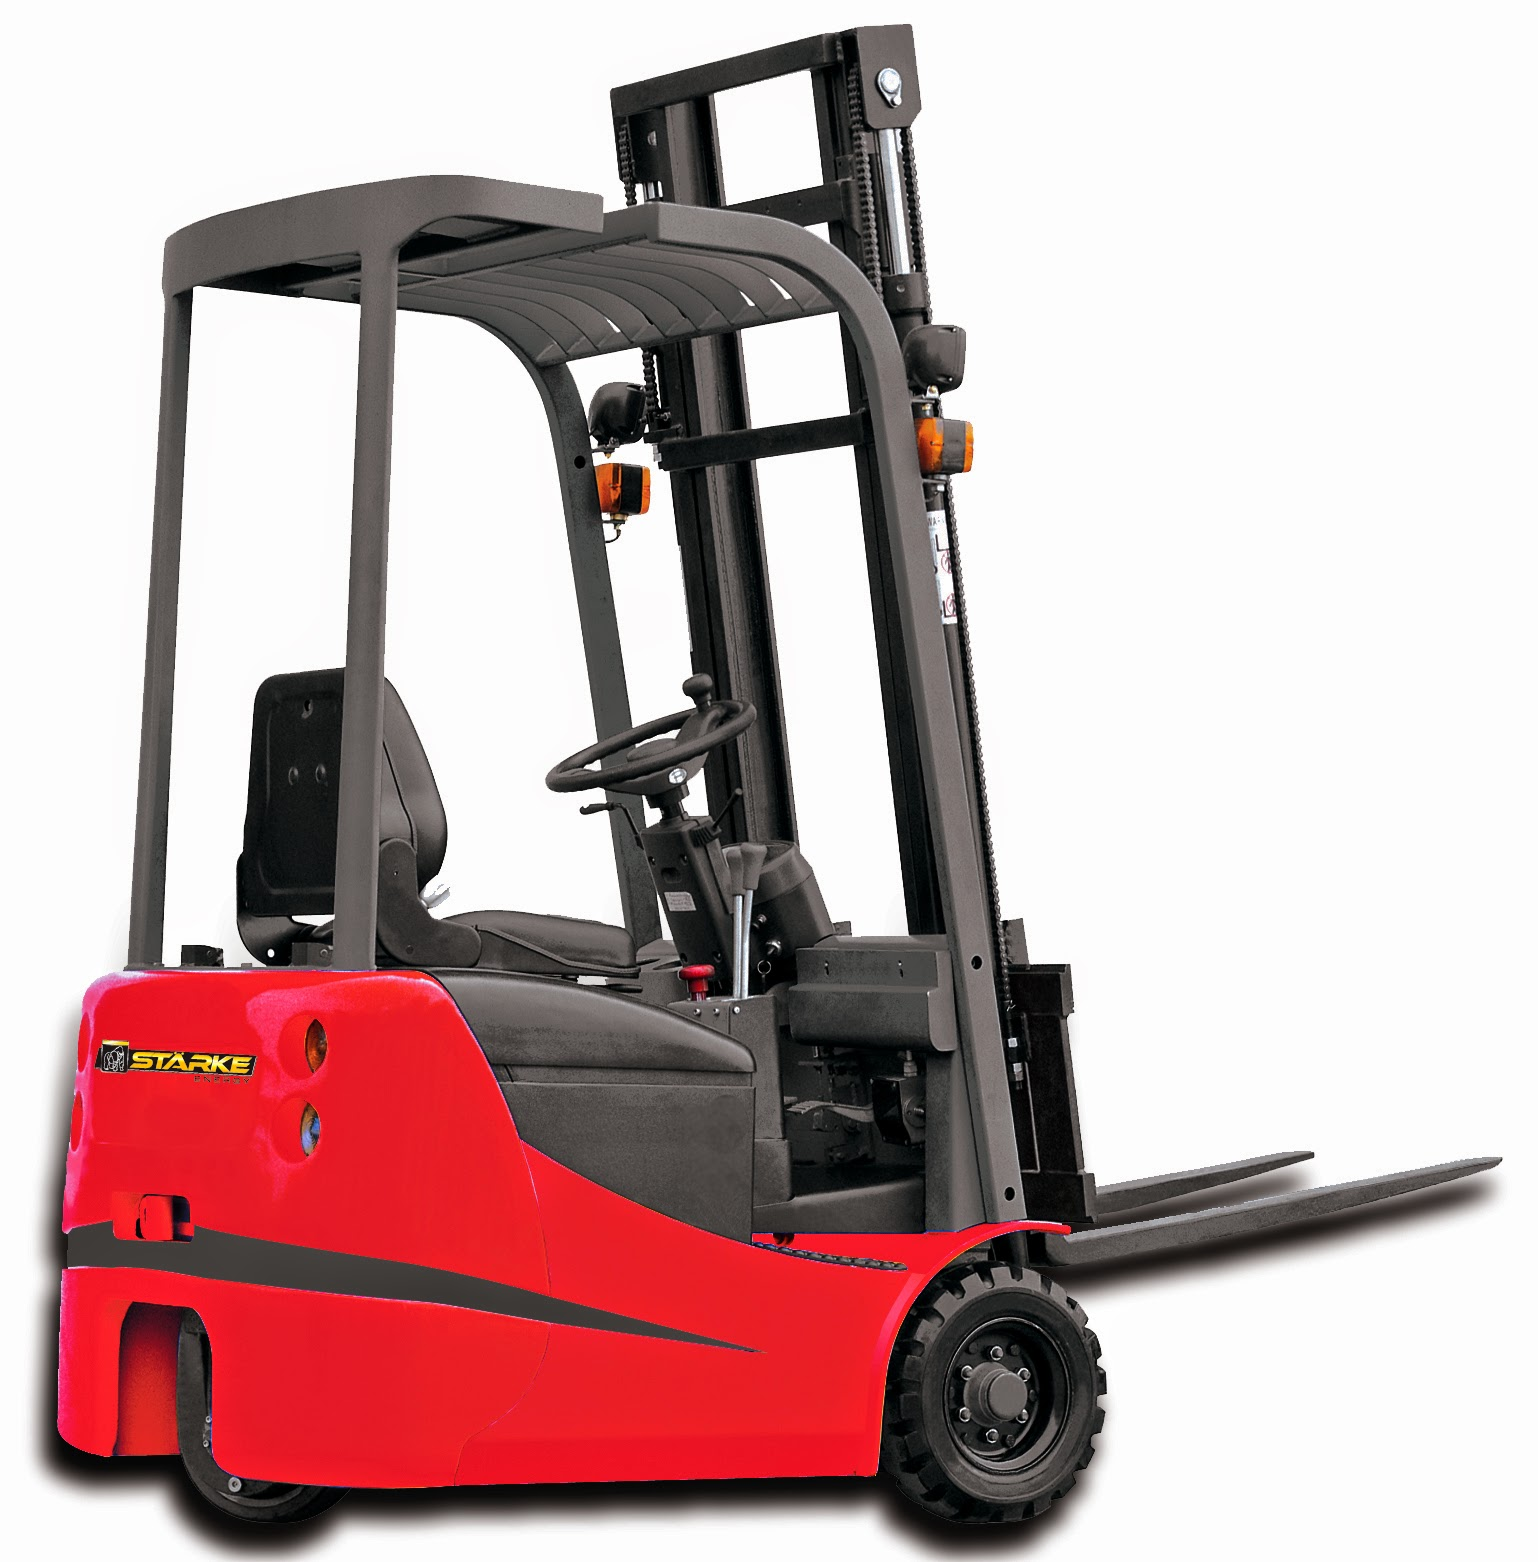 Select location type business with dock or forklift business without - Another Option Is An Electric Forklift Forklifts Come In A Wide Variety Of Sizes And Load Capacities They Can Be Relatively Inexpensive And Do The Work Of